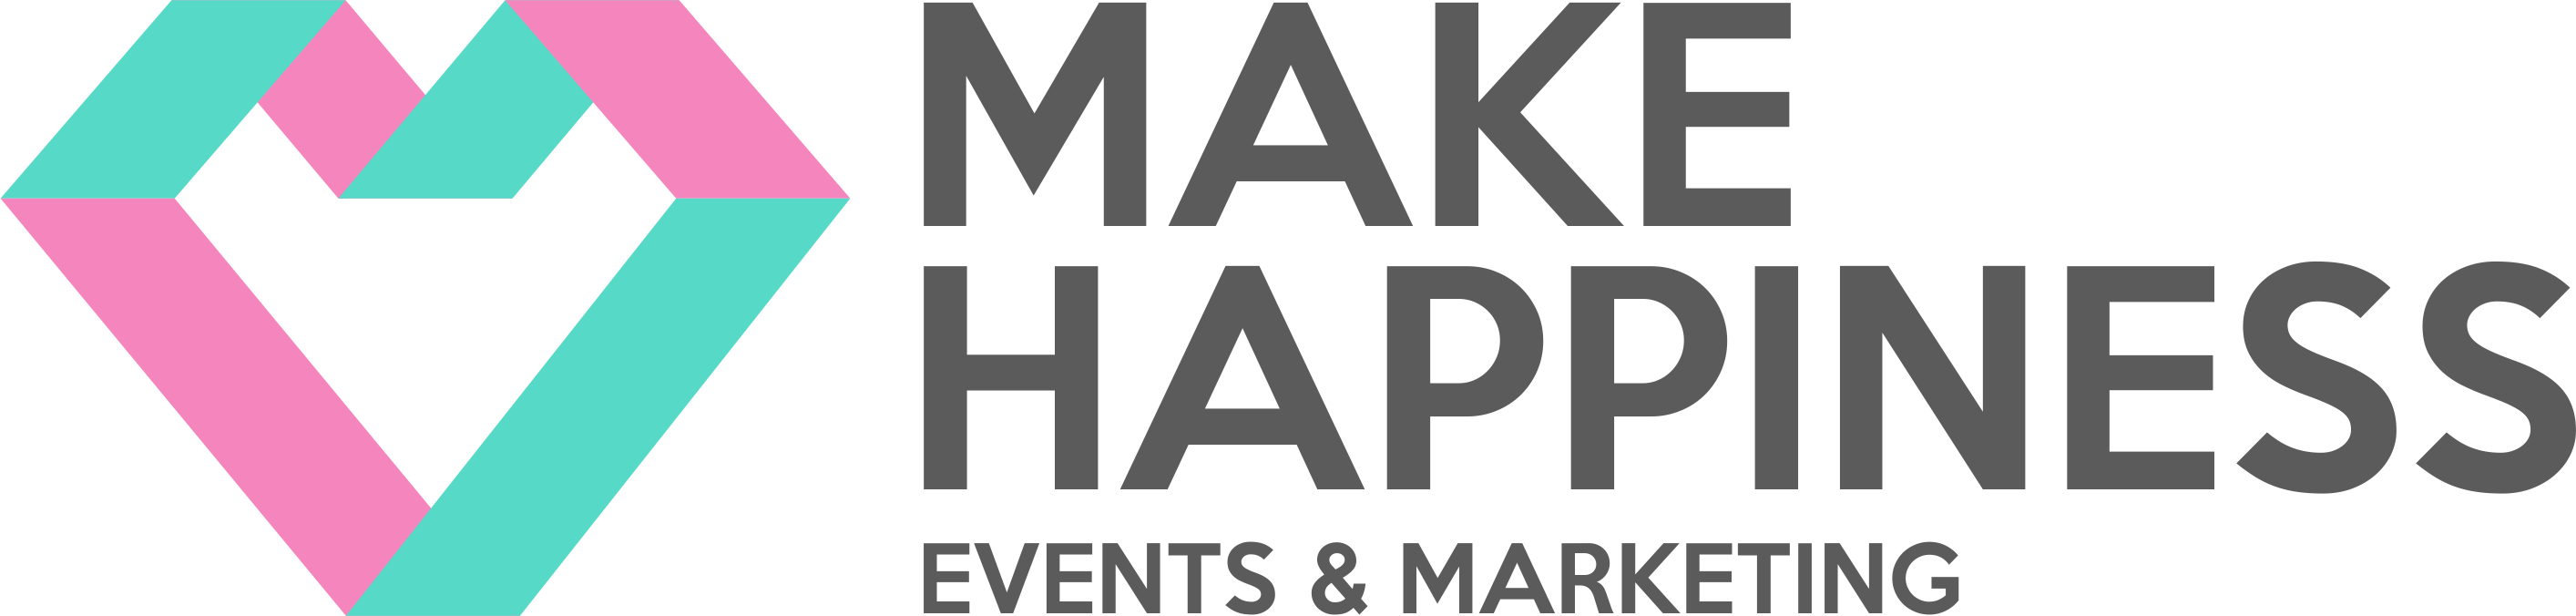 Make Happiness Events